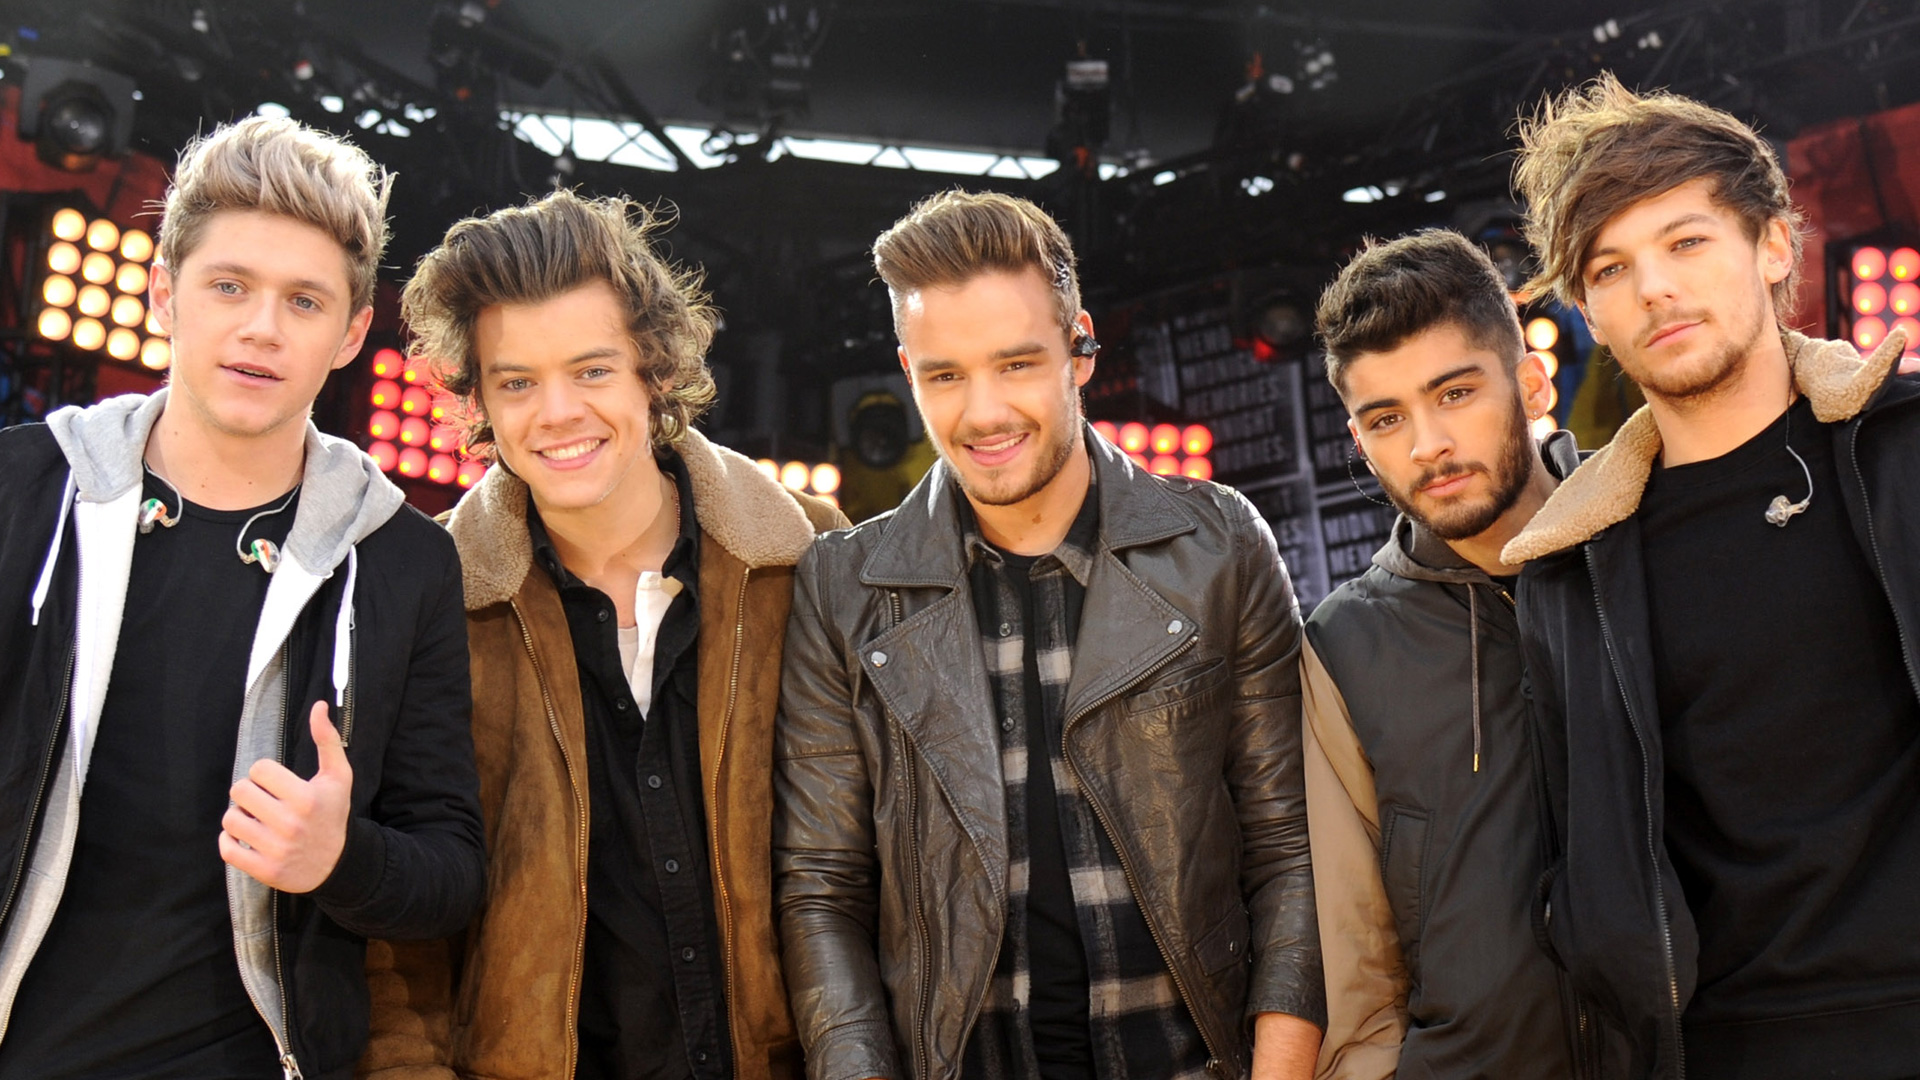 Learn the secret to 1D's coiffed style